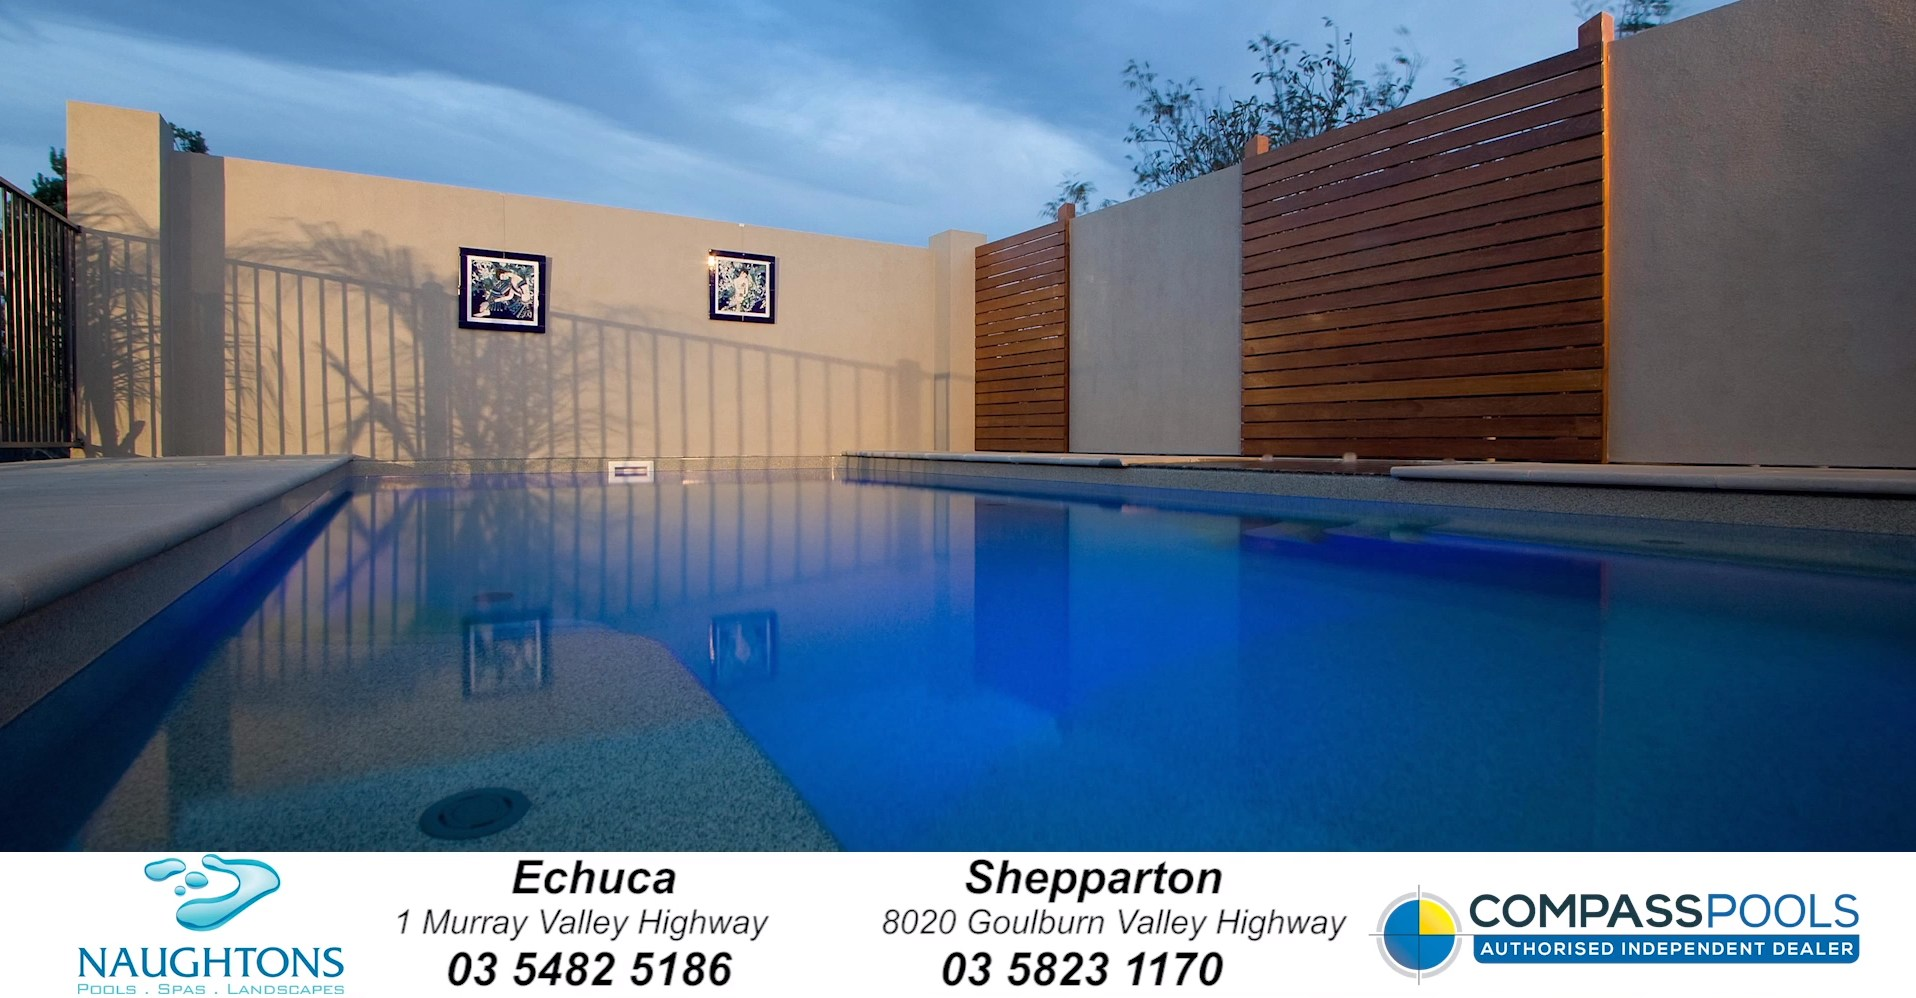 Compass Pools Australia Naughtons Pools and Spas Pool builder for Shepparton and Echuca